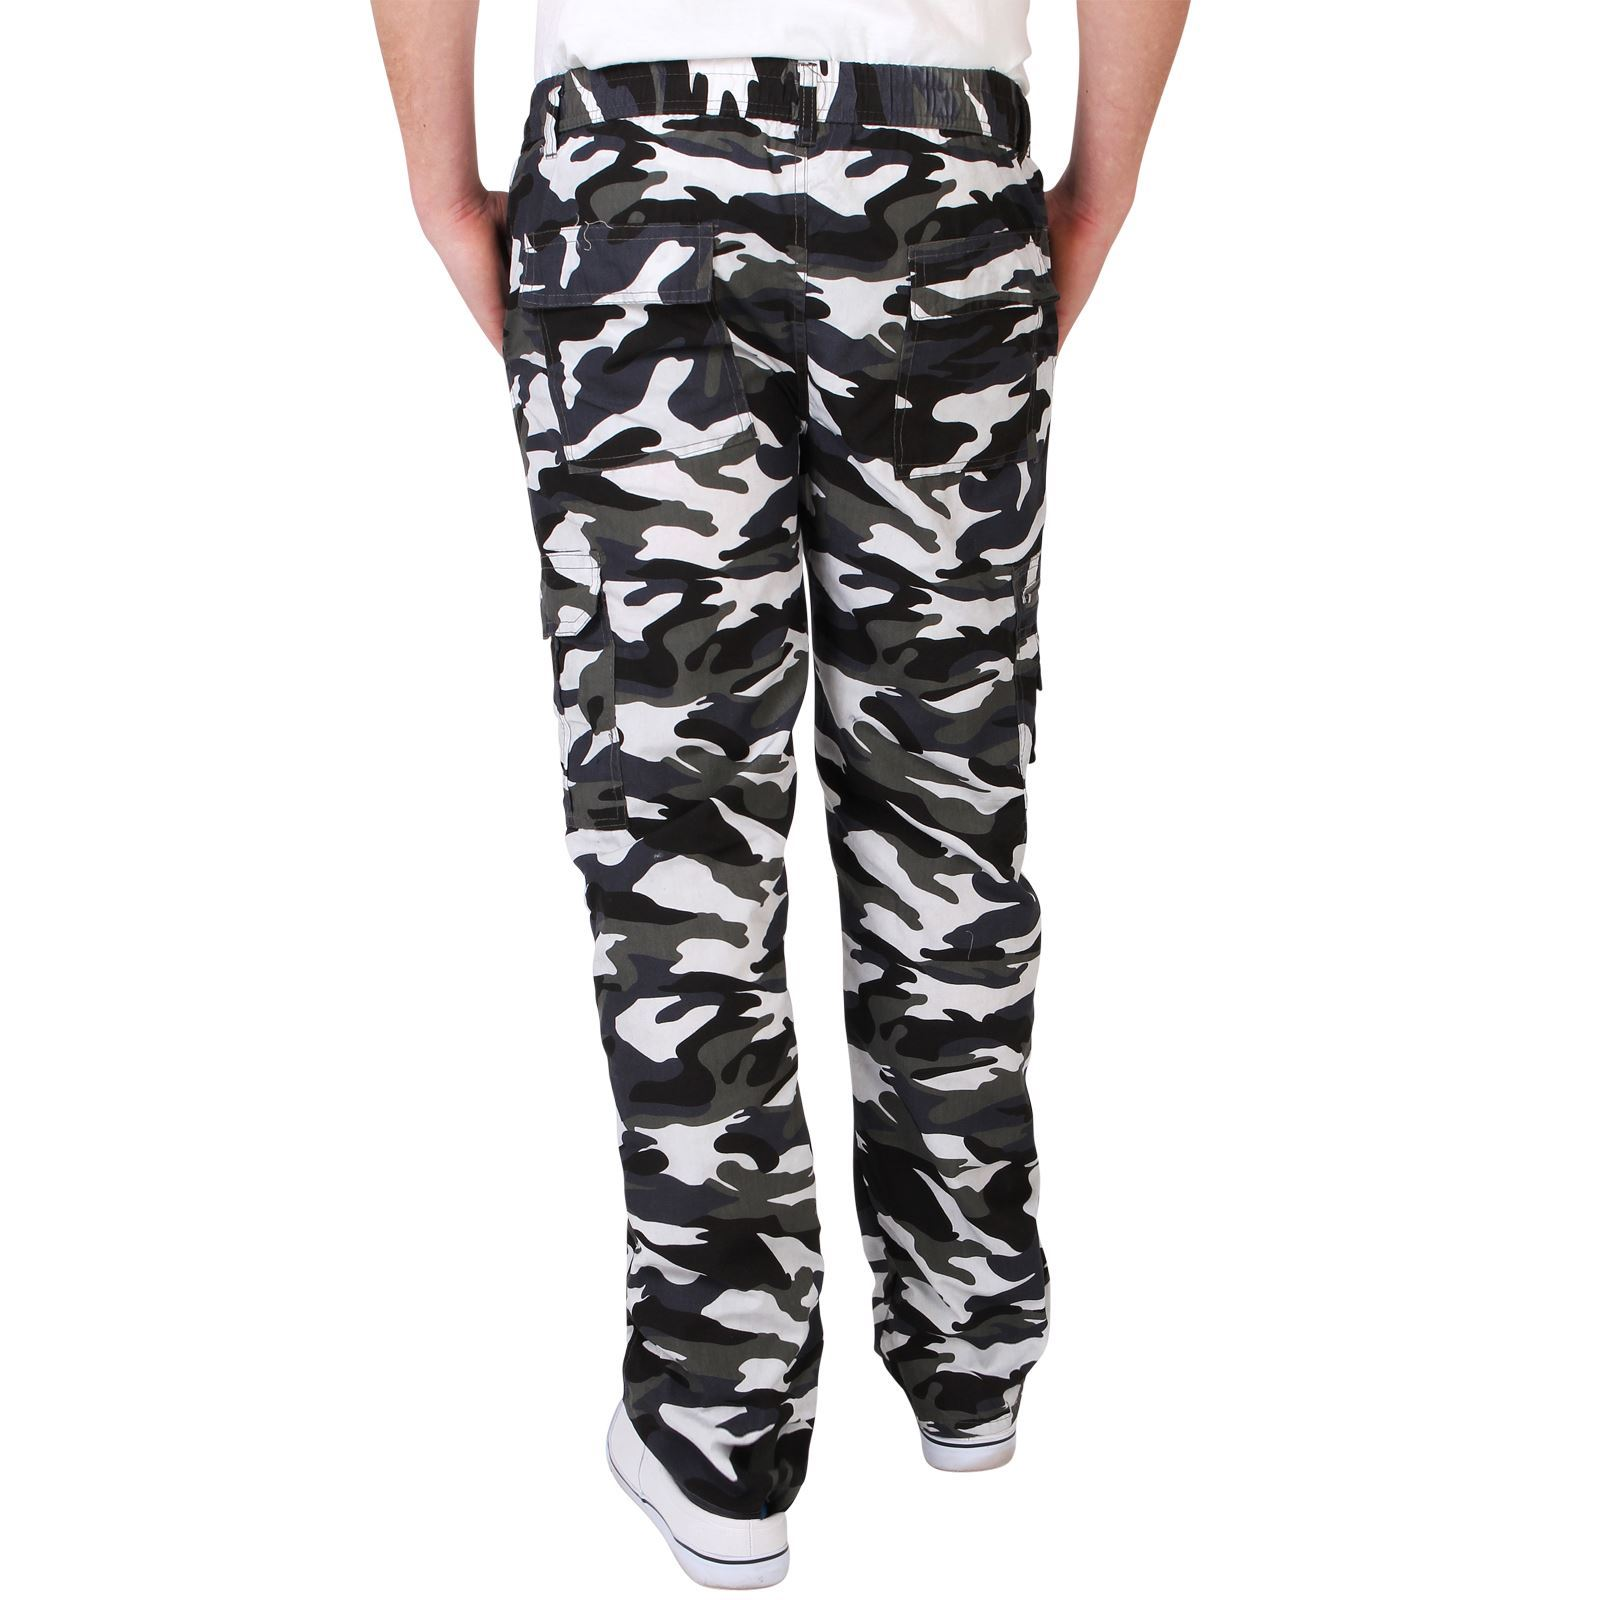 Mens-Combat-Military-Army-Camouflage-Cargo-Camo-Trousers-Pants-Casual-Work-Sizes thumbnail 12